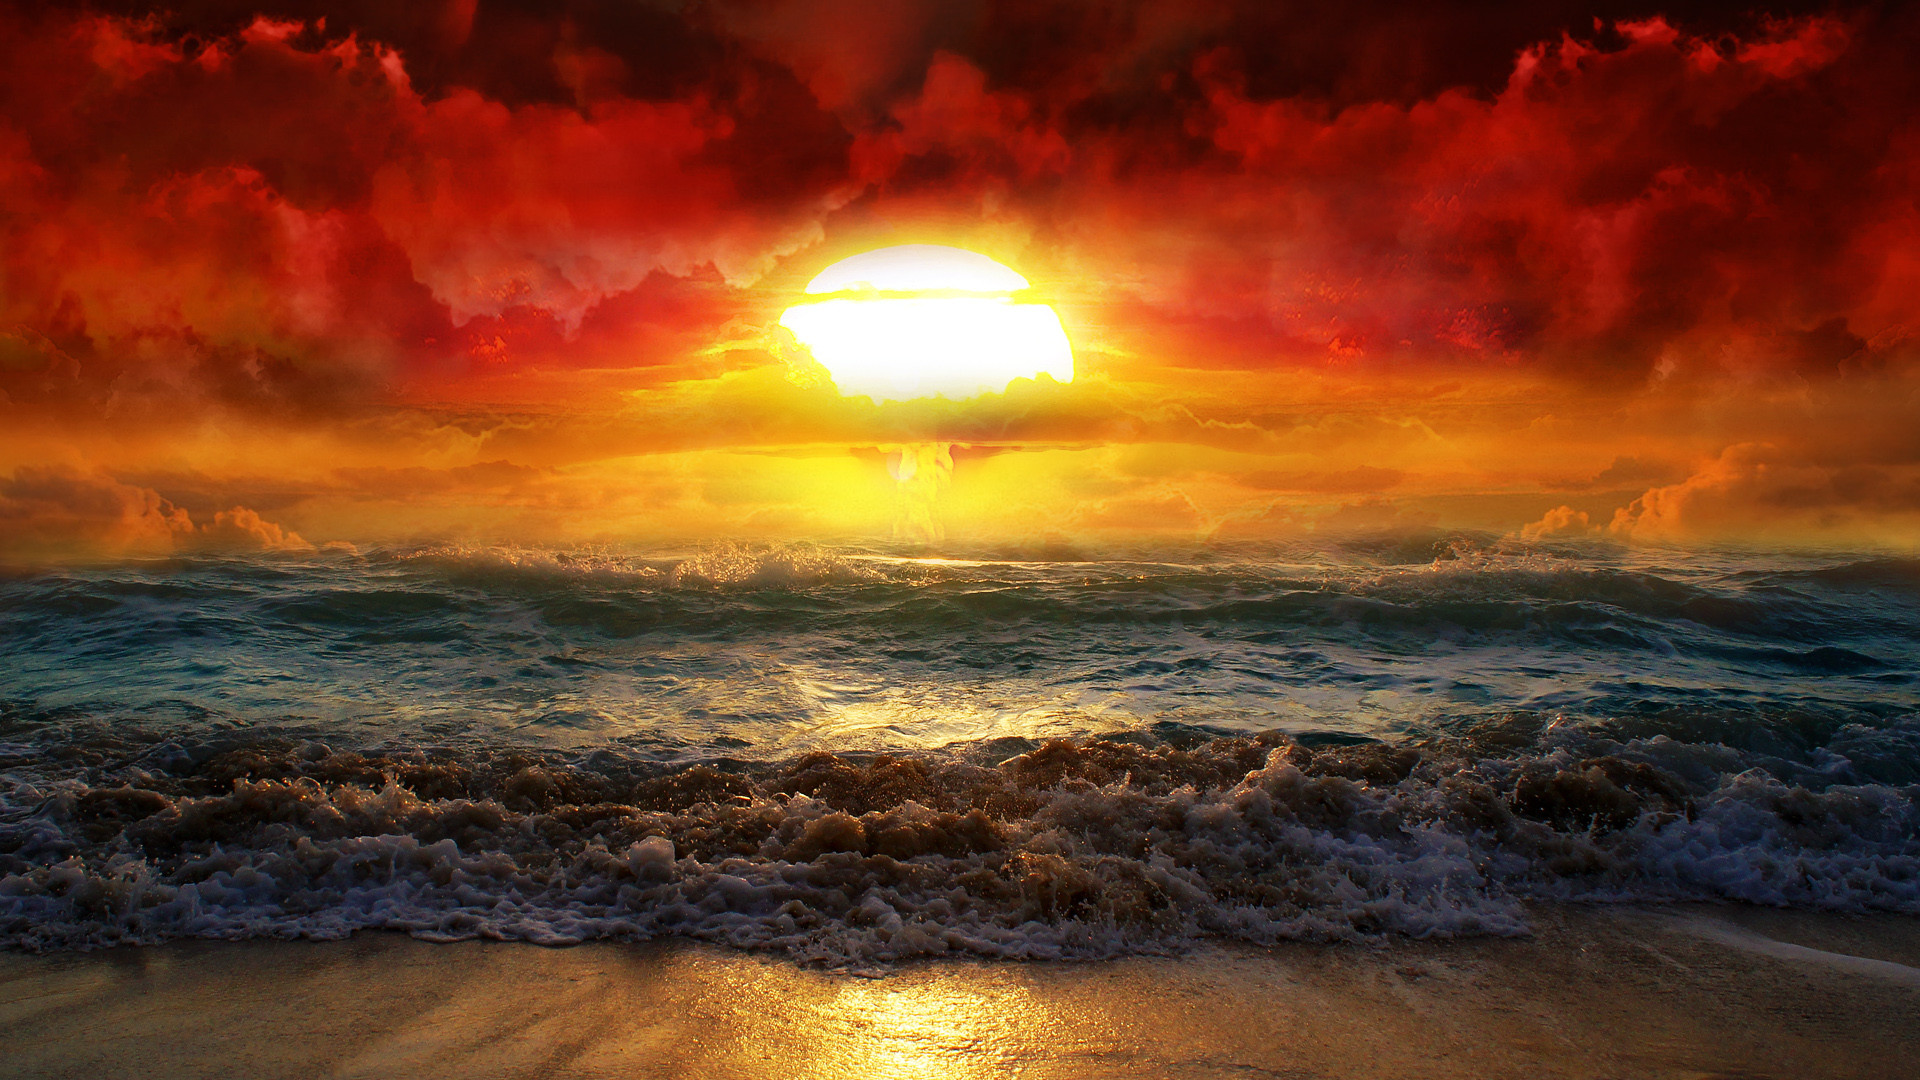 Sunrise Wallpaper Hd For Mobile Gadget and PC Wallpaper